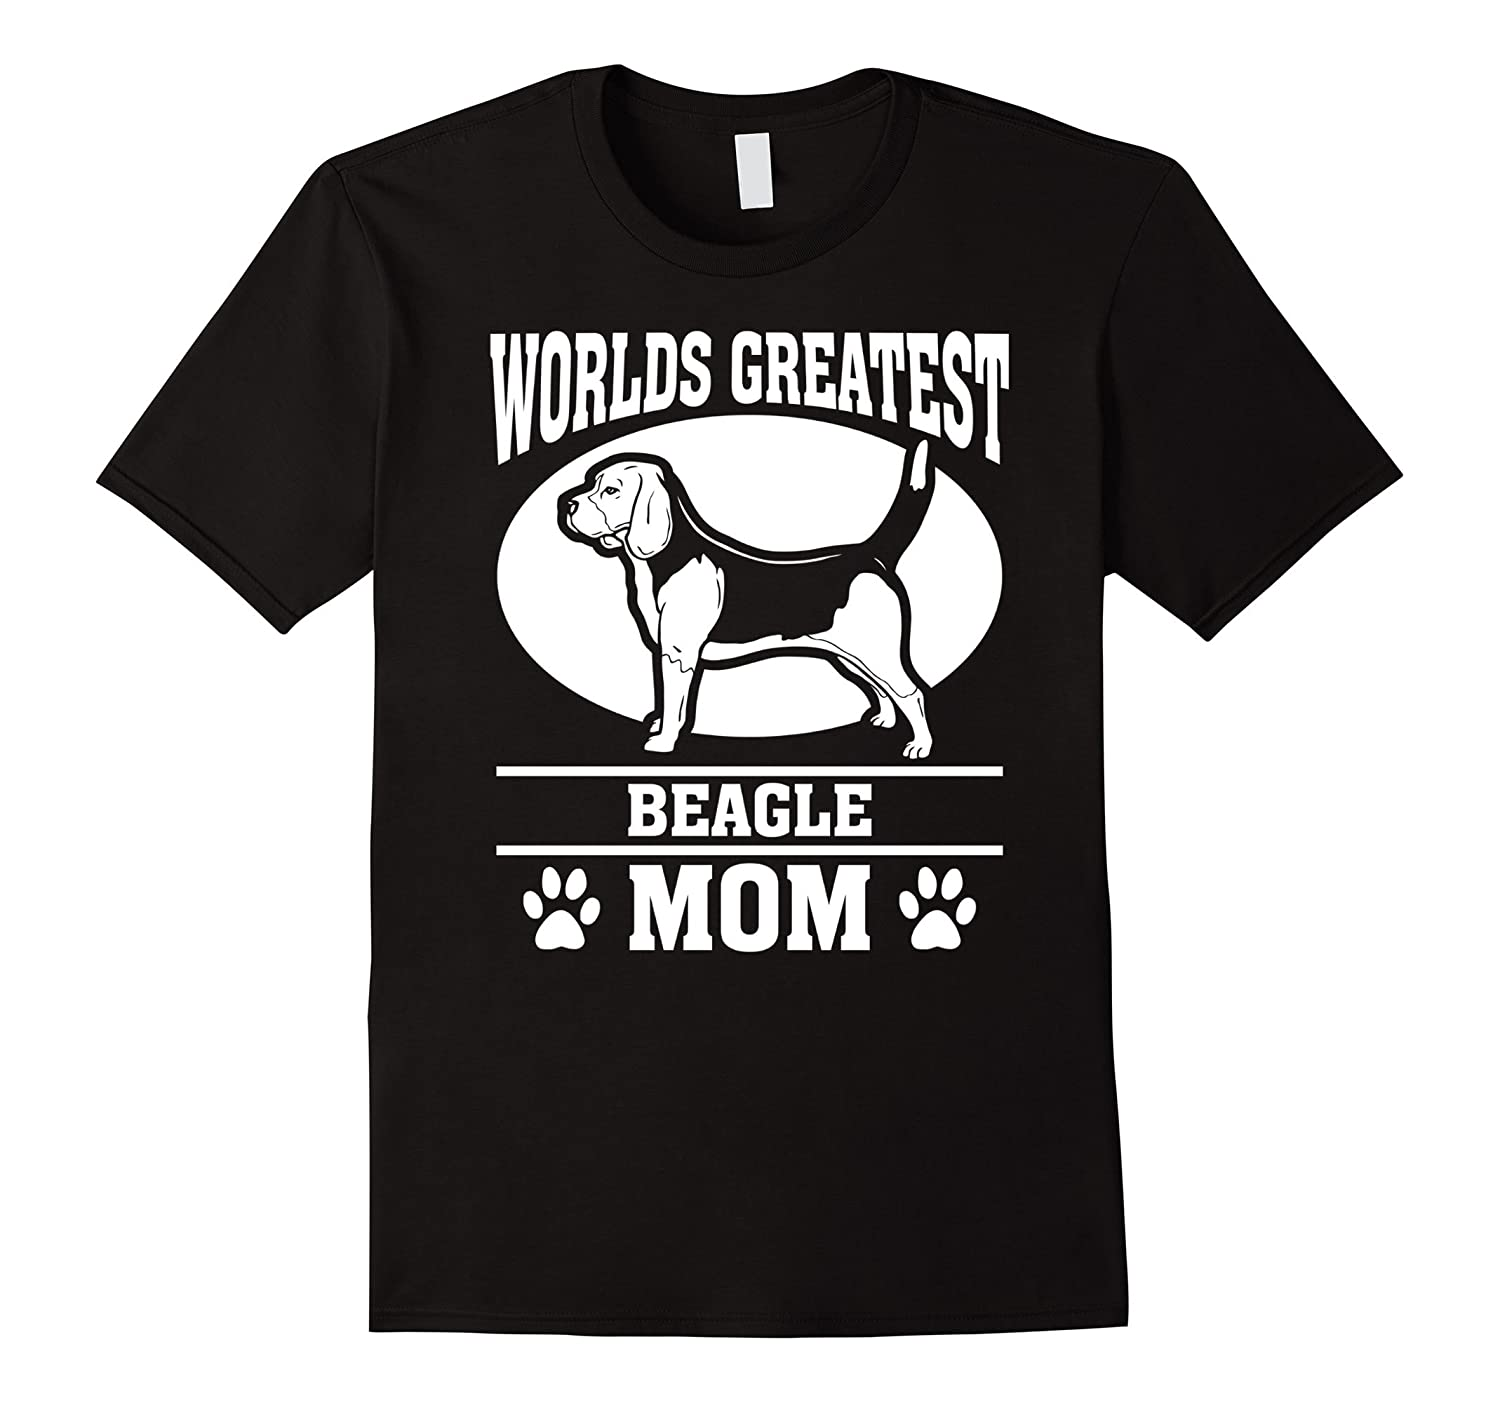 Worlds Greatest Beagle Mom T-shirt-CL